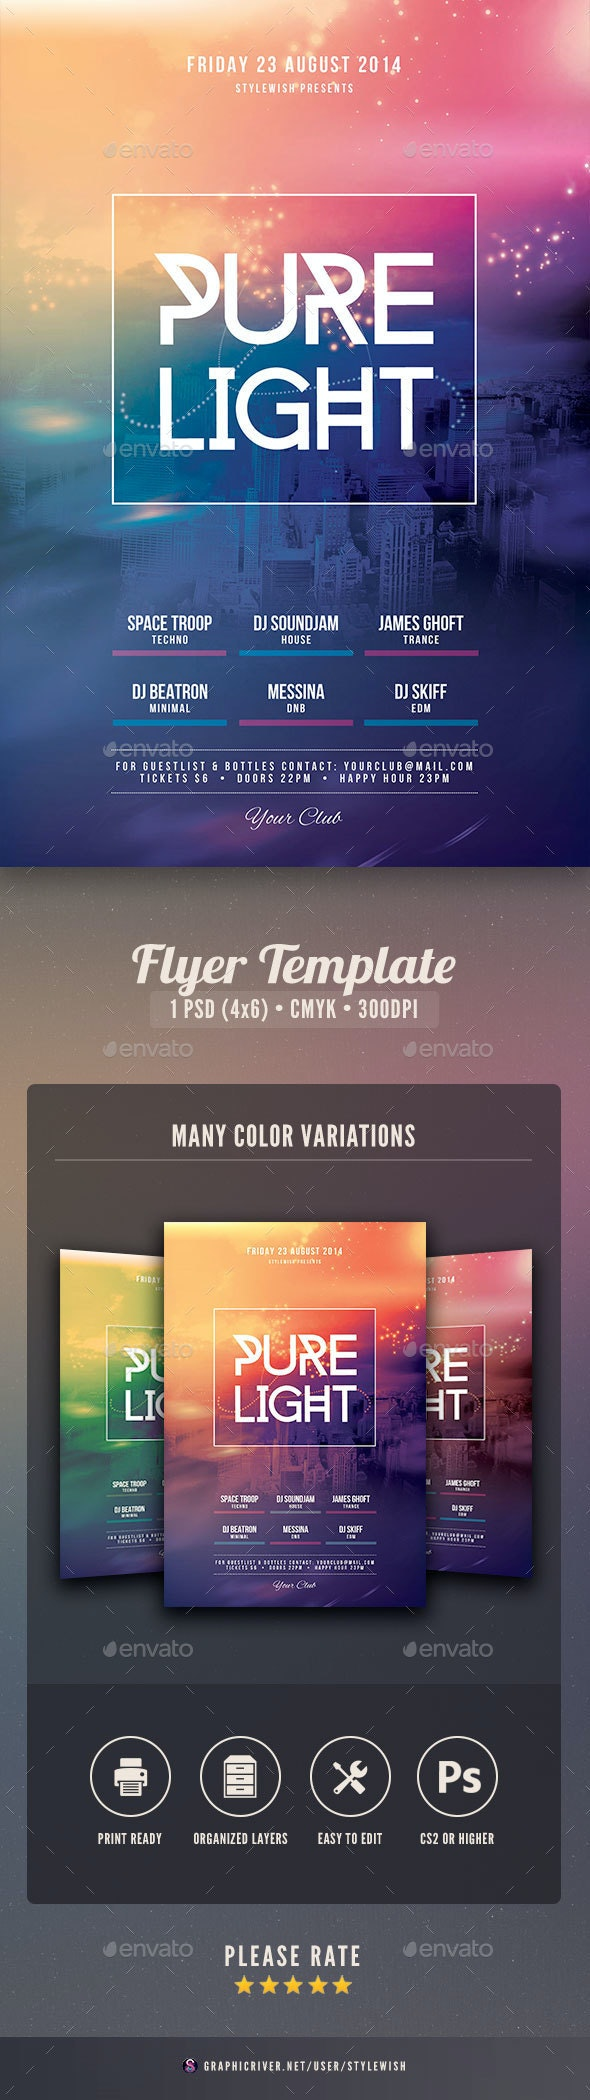 Pure Light Flyer - Clubs & Parties Events